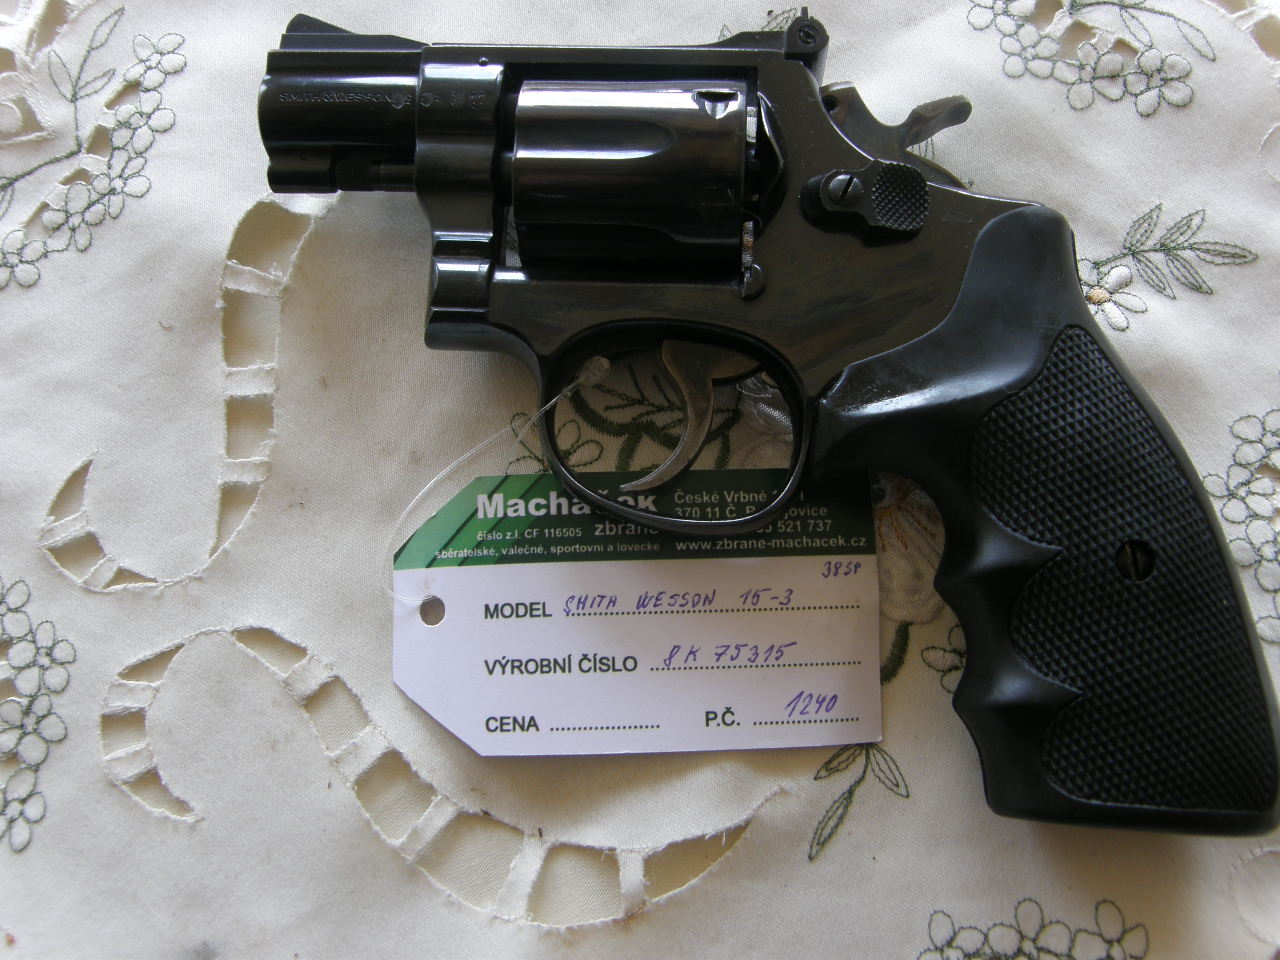 Revolver Smith Wesson Mod.15_3 v.č.8K75315 r.38 SP.